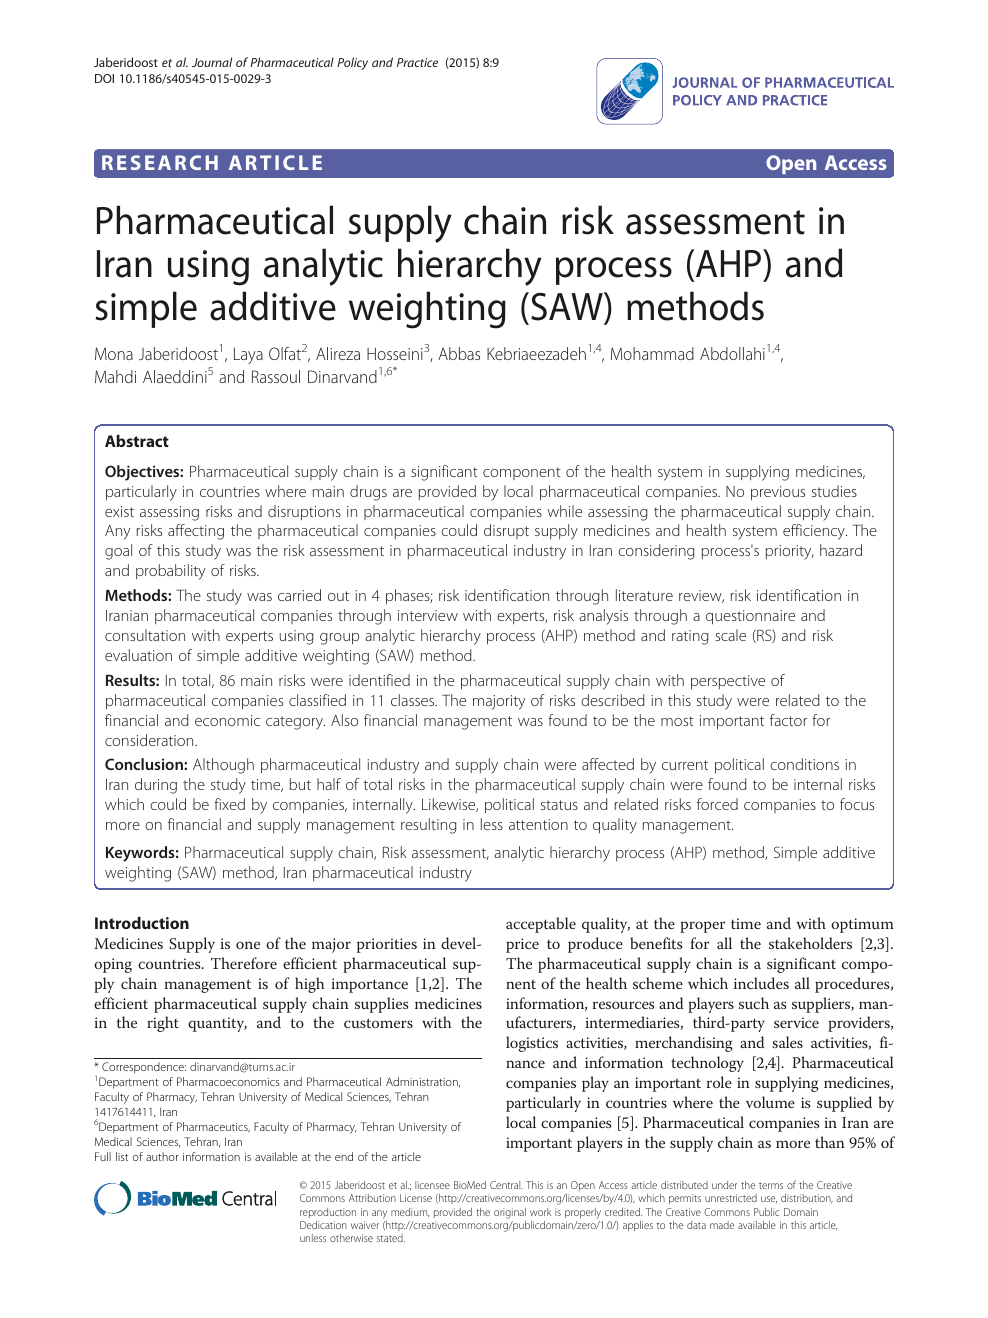 Pharmaceutical supply chain risk assessment in Iran using